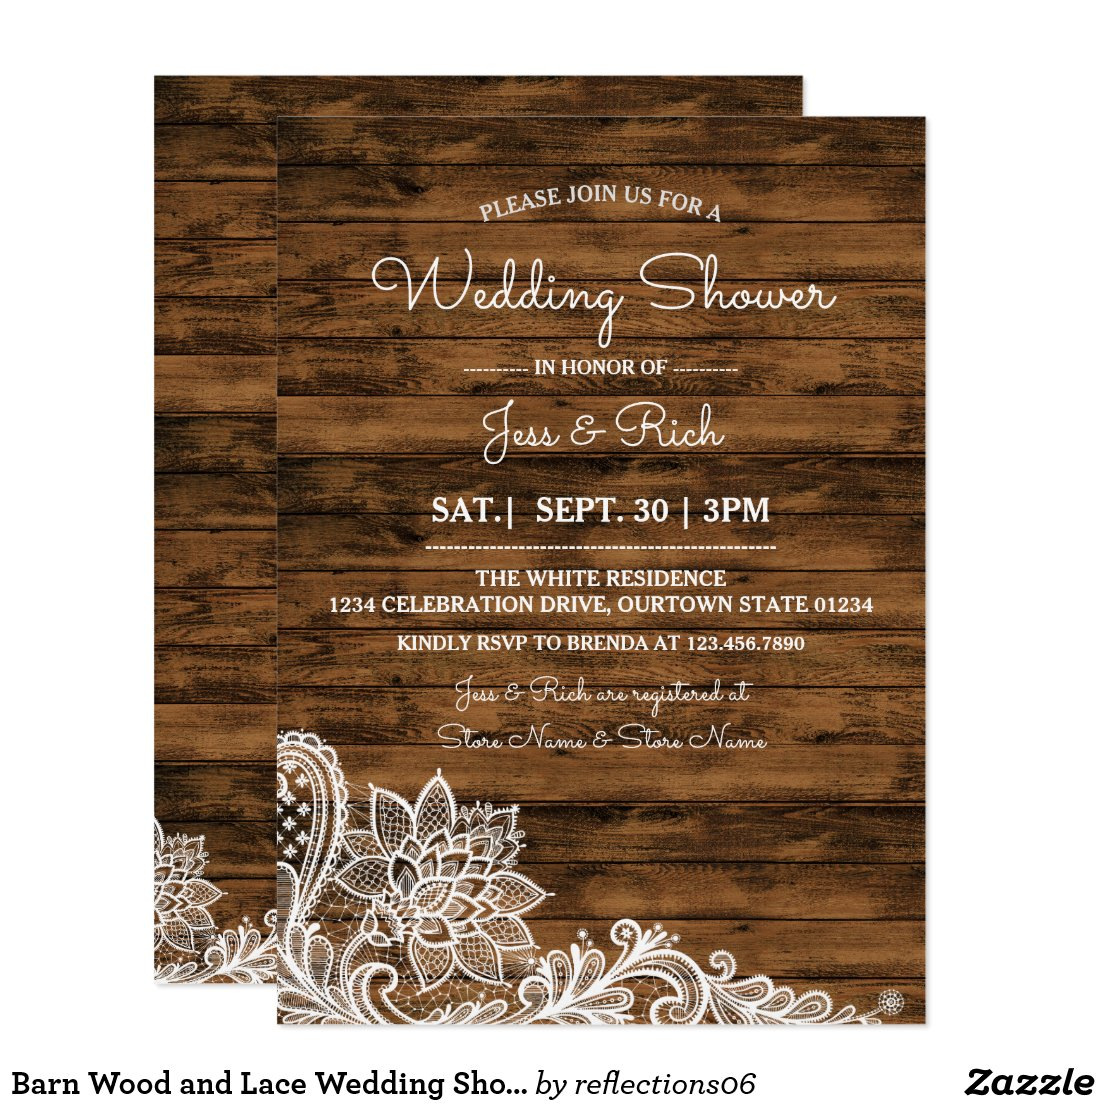 Barn Wood and Lace Wedding Shower Invitation